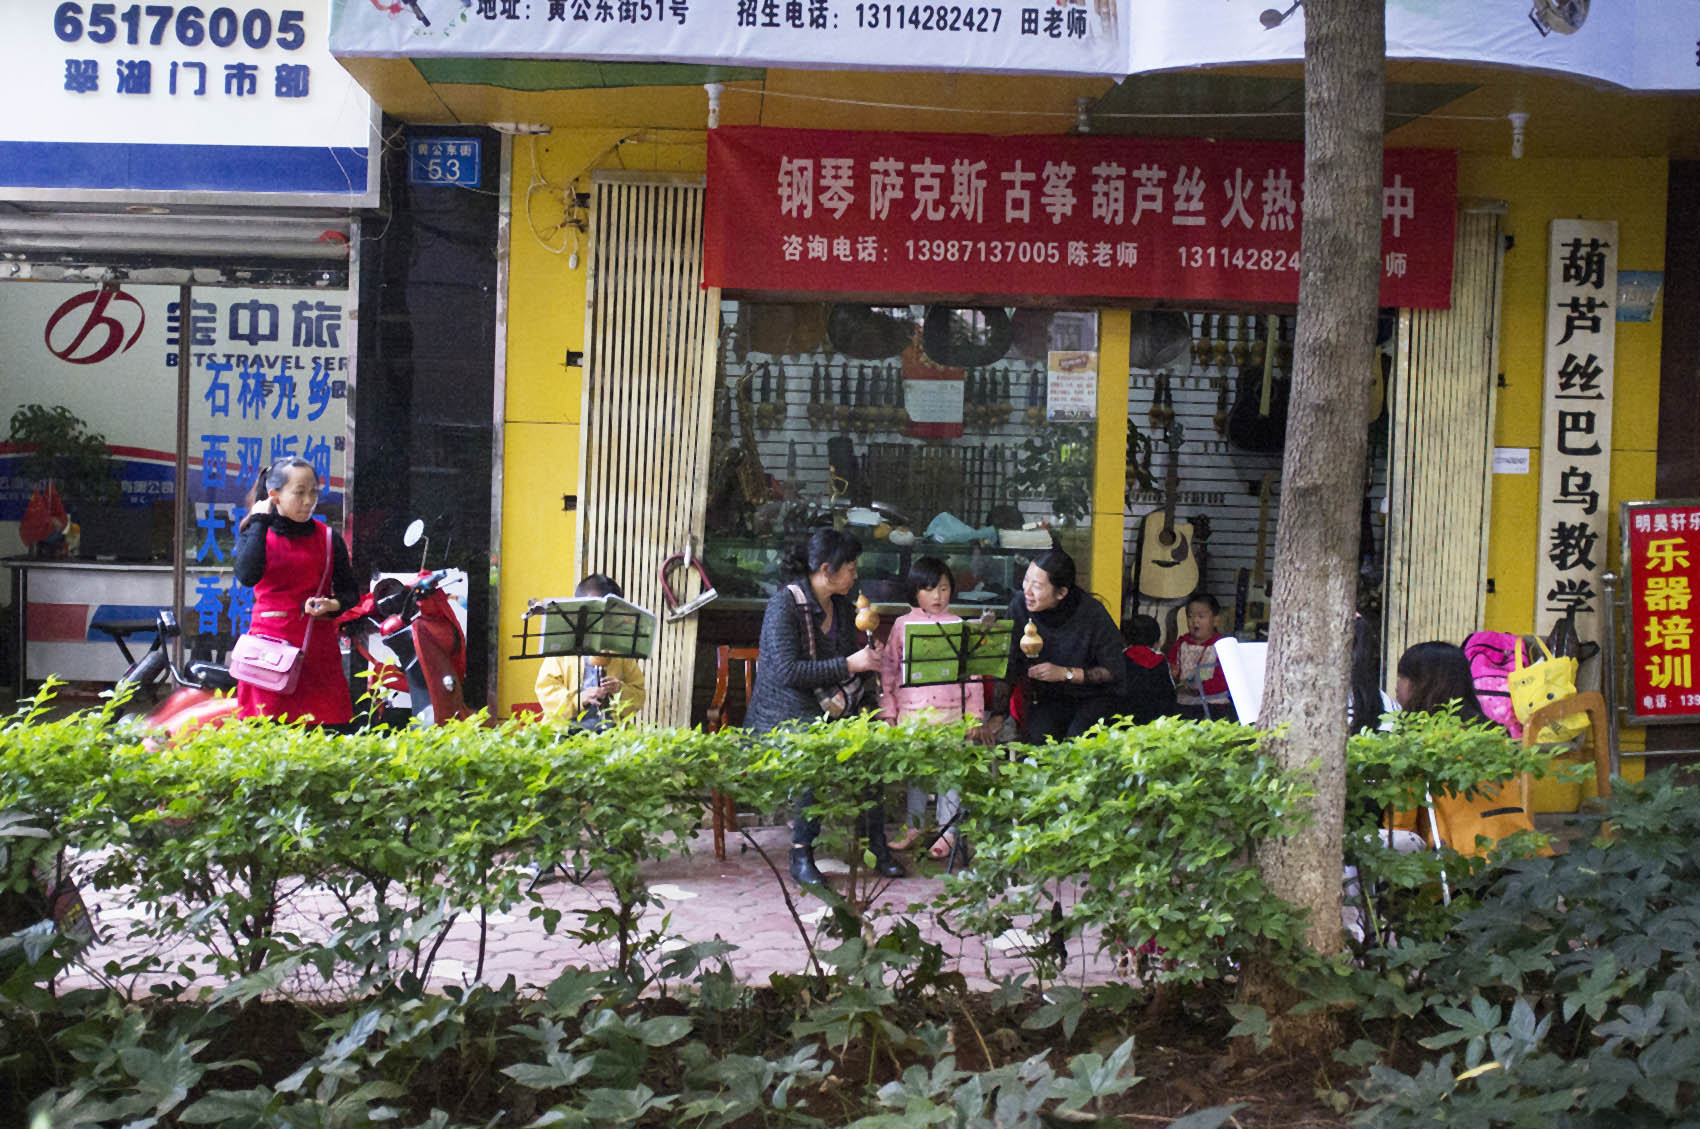 Children practice playing traditional instruments on the street.